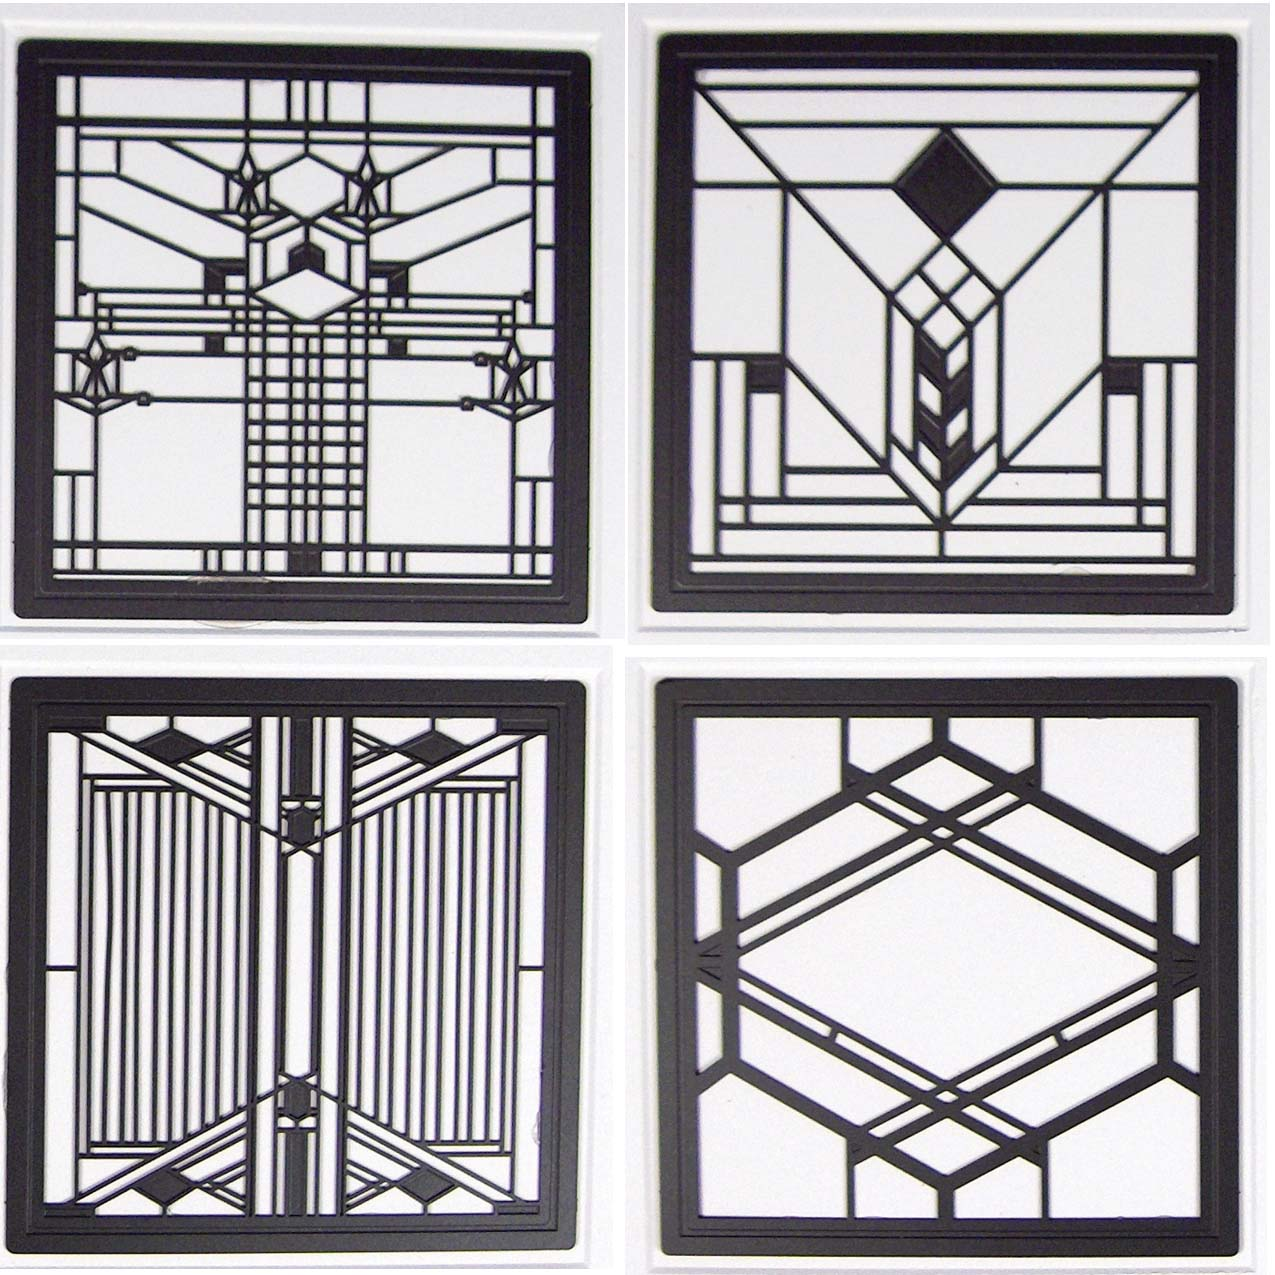 Frank Lloyd Wright costers